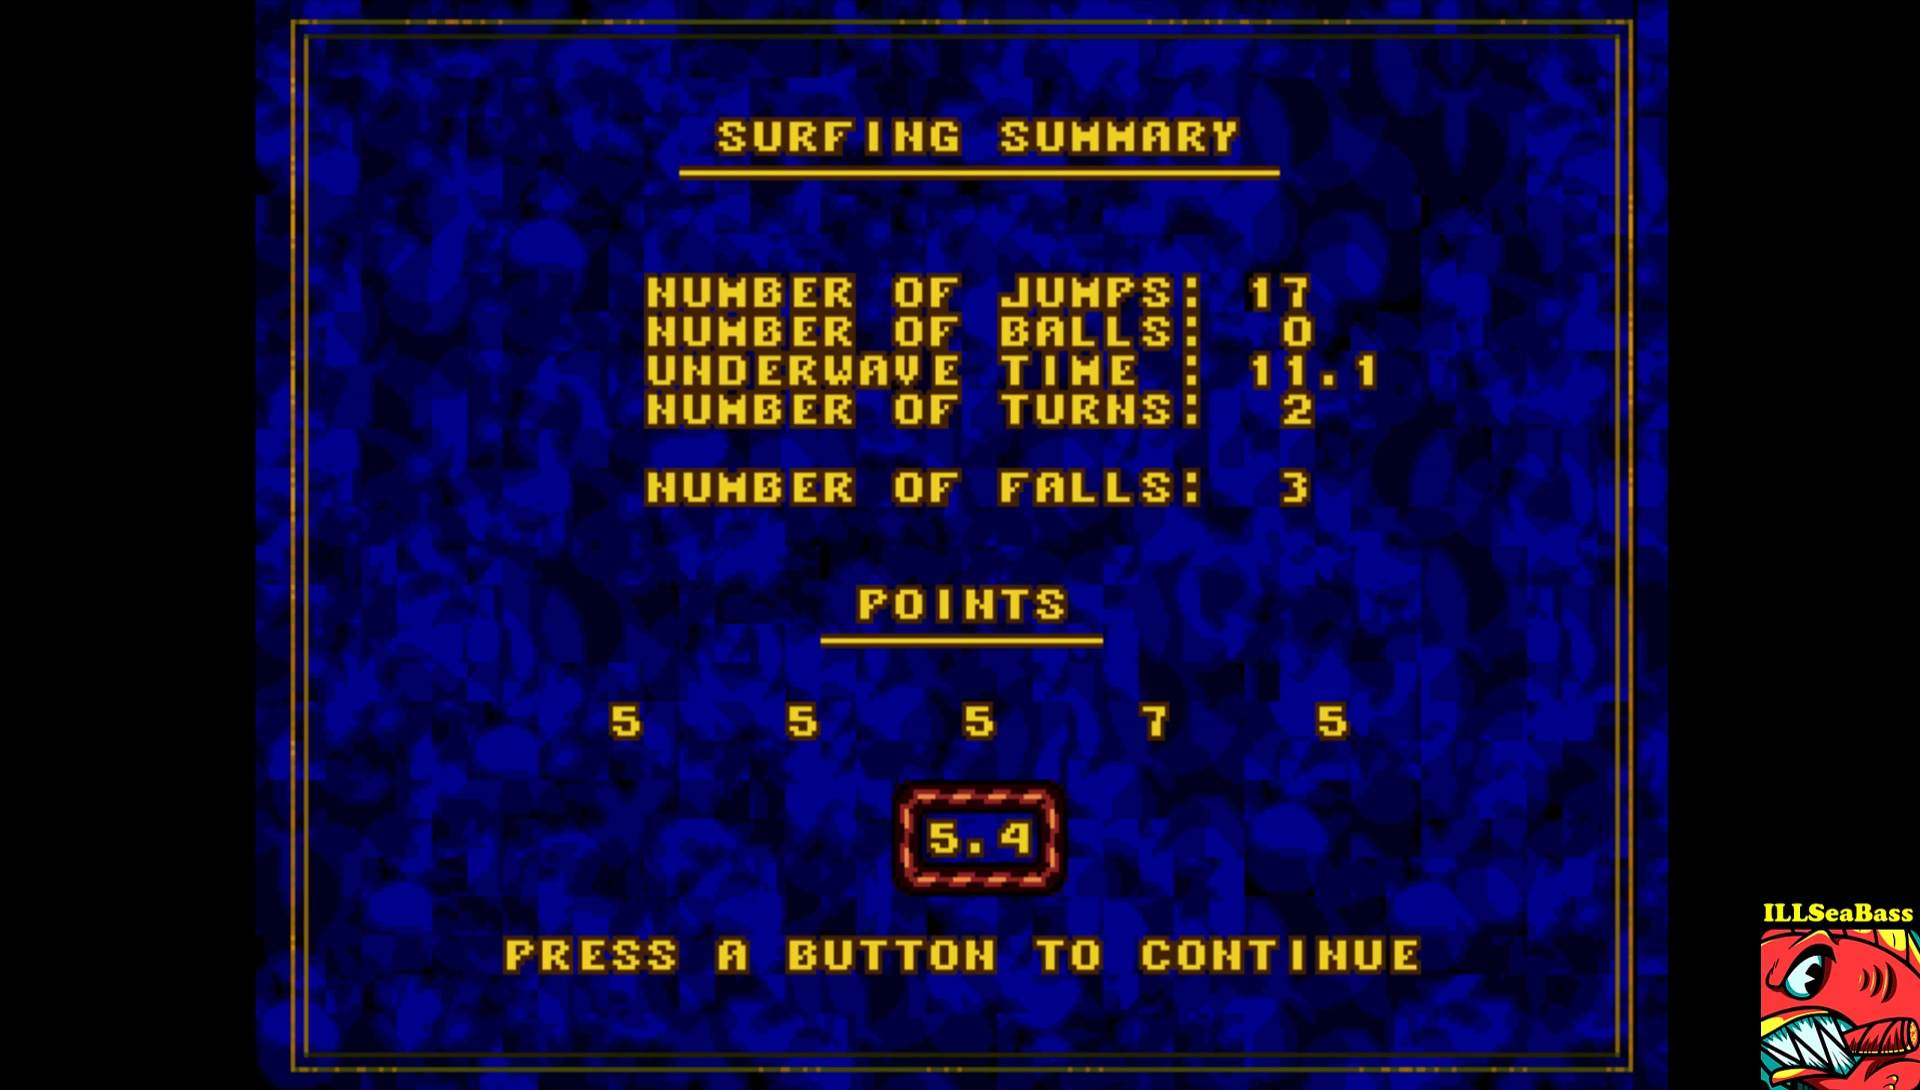 ILLSeaBass: California Games: Surfing (Sega Genesis / MegaDrive Emulated) 54 points on 2017-04-02 19:04:11